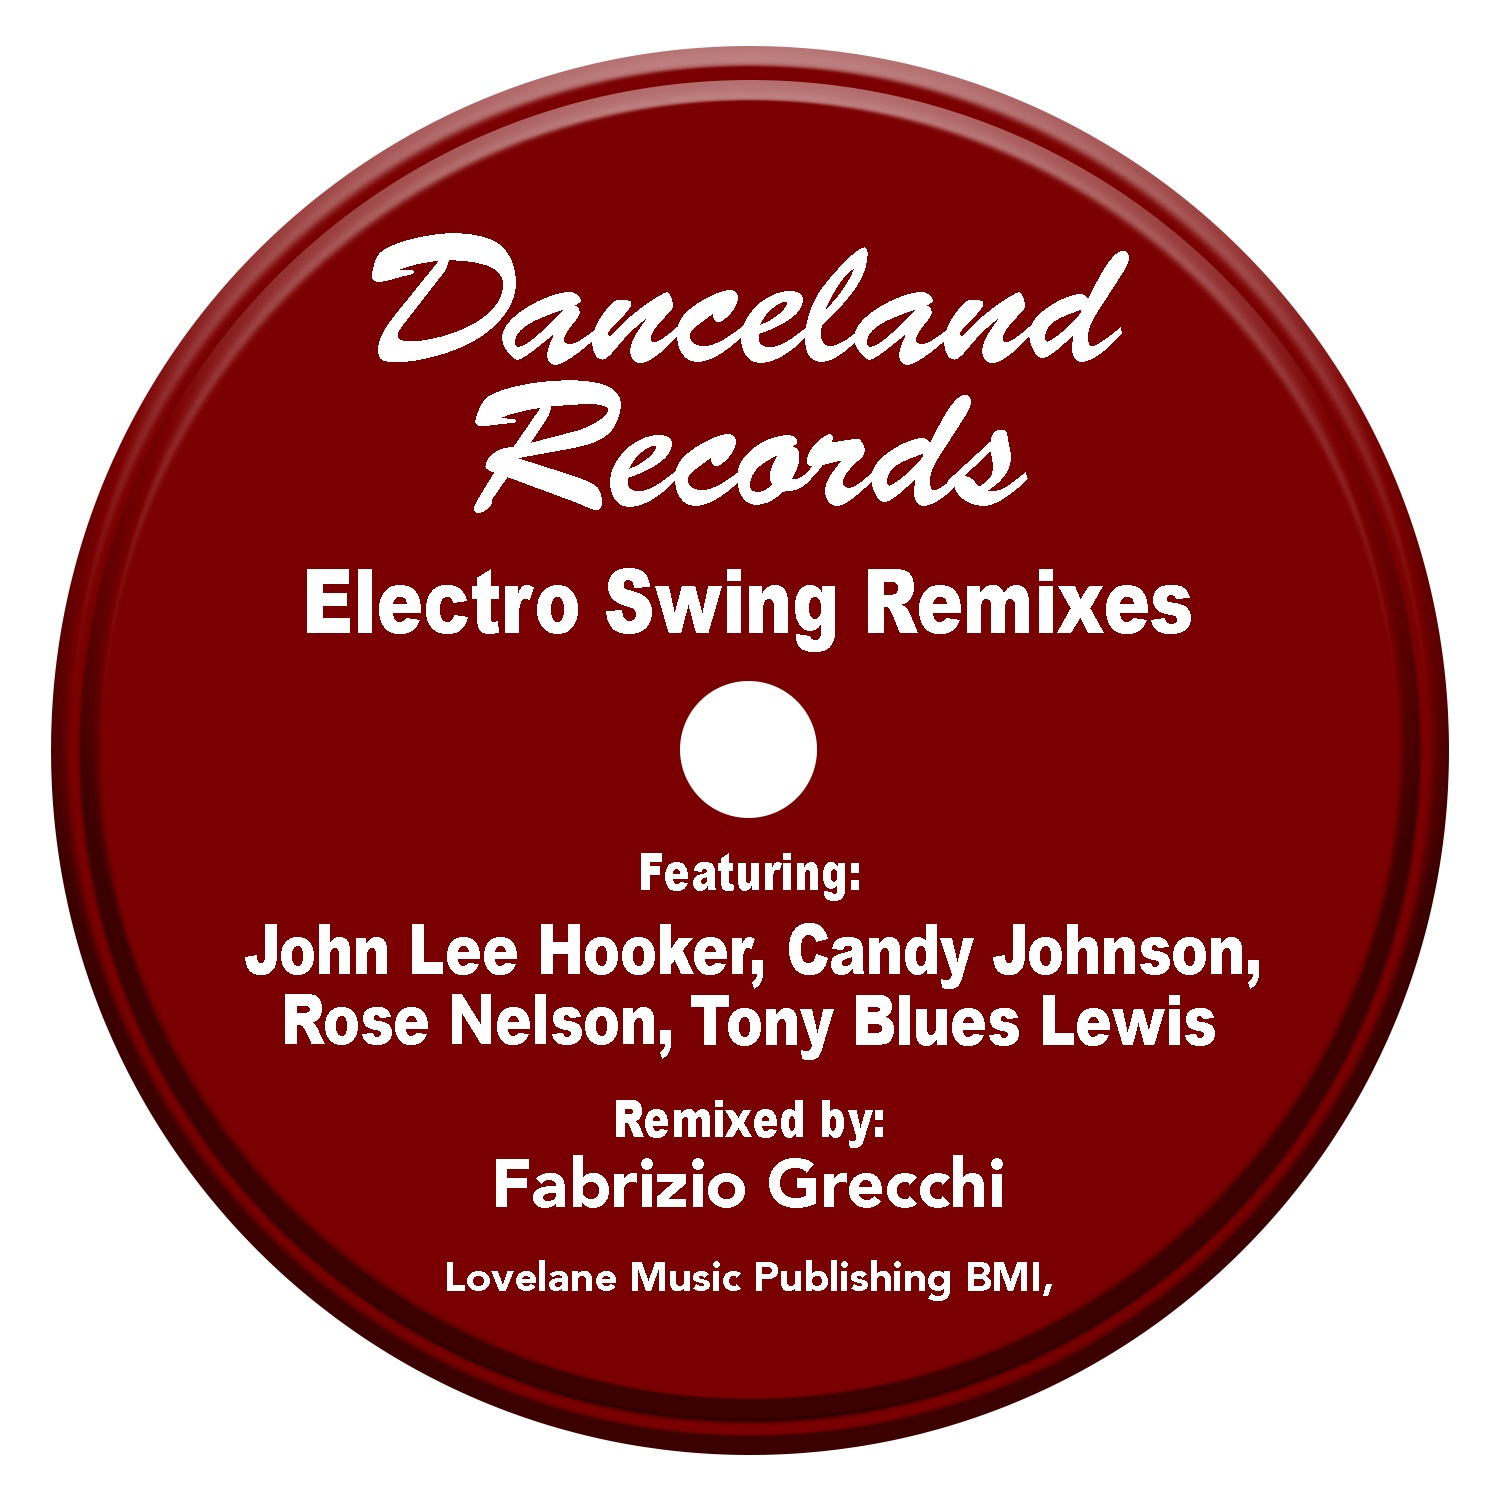 Danceland Records Remixes